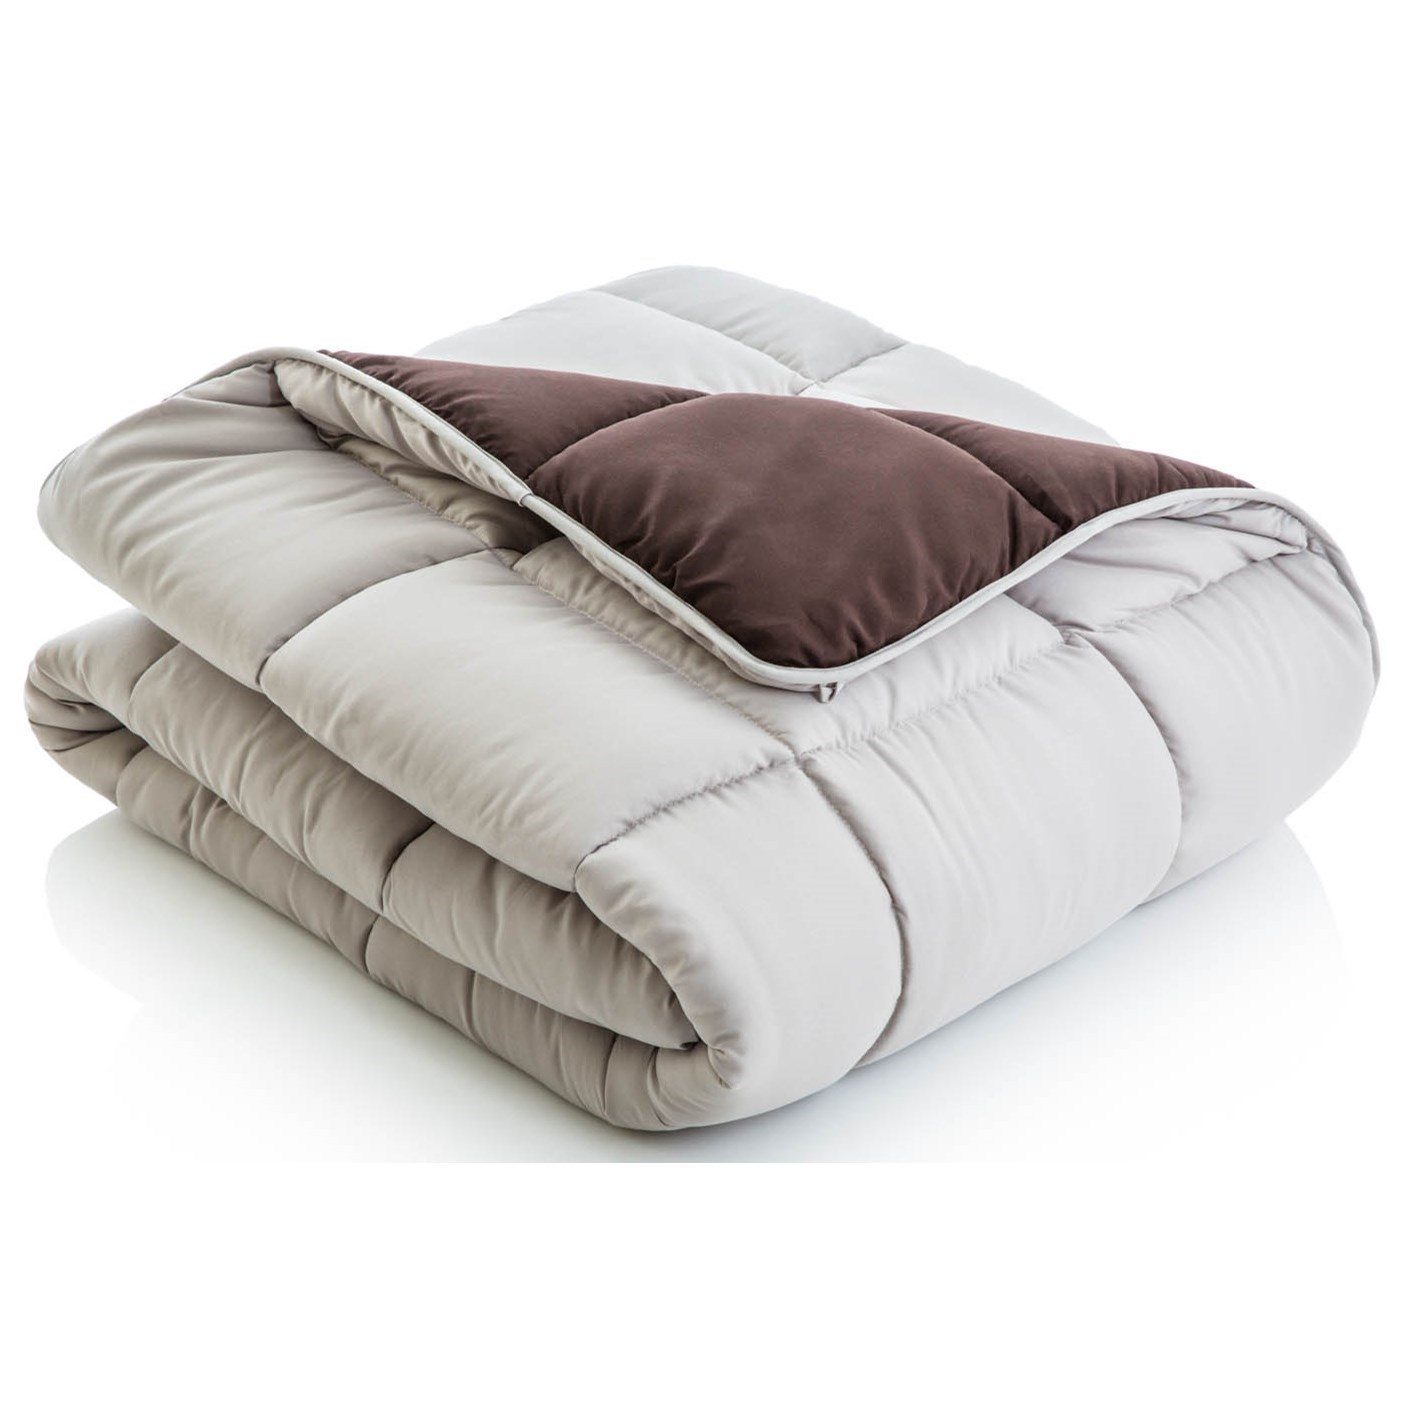 Malouf Reversible Bed in a Bag Queen Reversible Bed in a Bag - Item Number: MA01QQDRCOBB